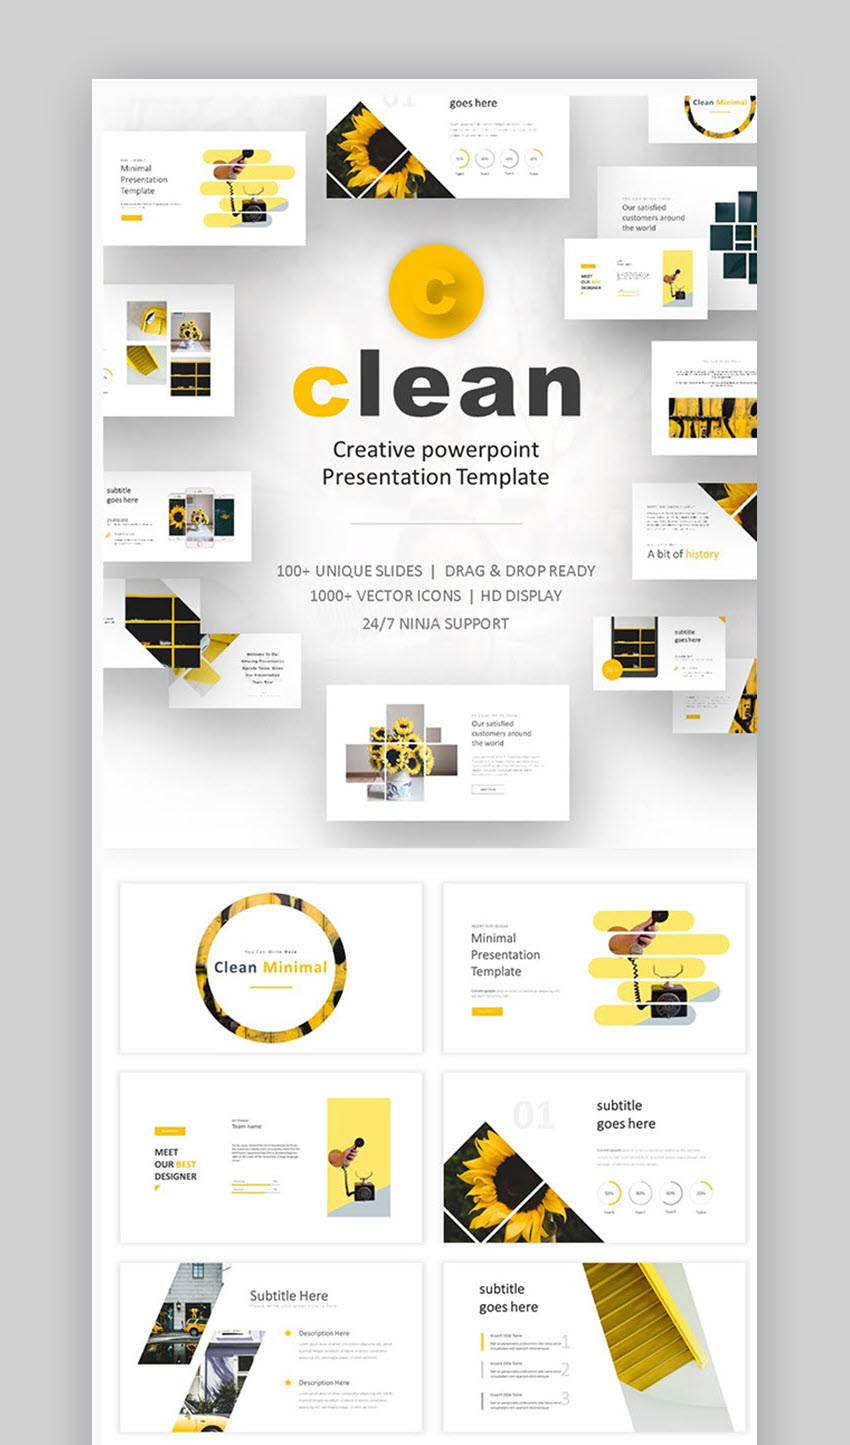 20 Clean Powerpoint Templates With Minimalist Designs For 2019